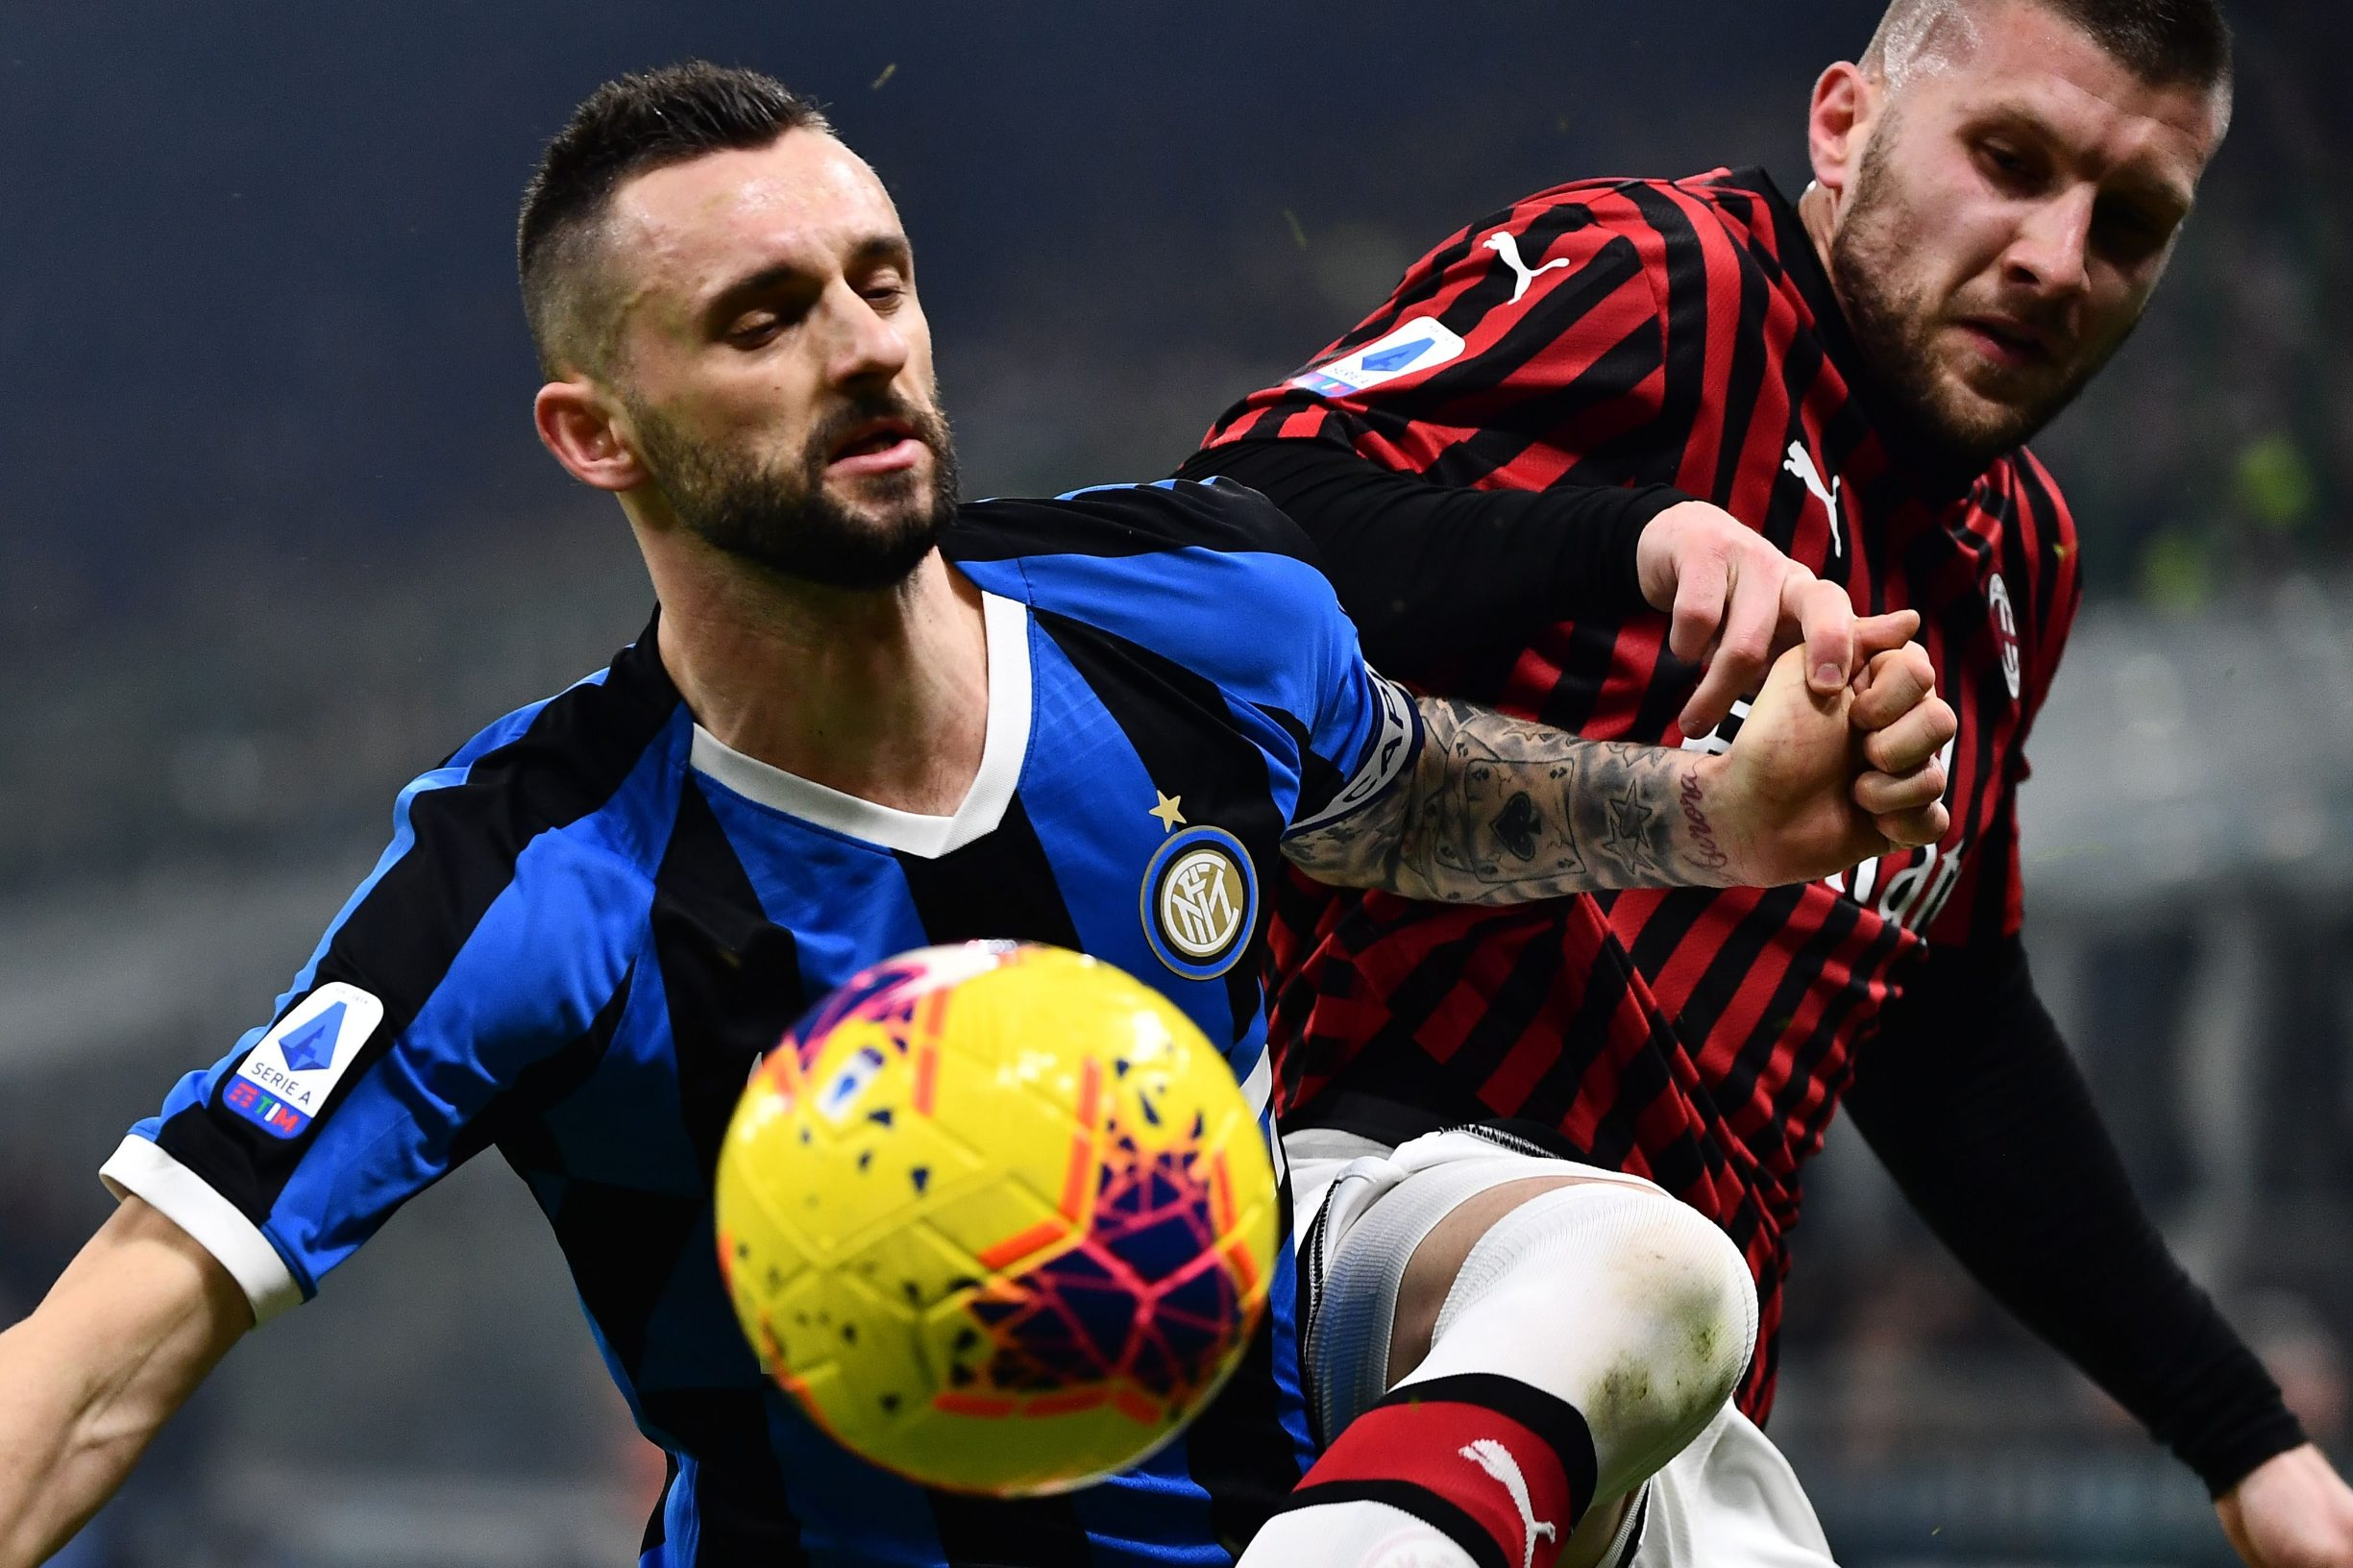 Inter Milan's midfielder Marcelo Brozovic from Croatia (L) fights for the ball with AC Milan's forward Ante Rebic from Croatia  during the Italian Serie A football match Inter Milan vs AC Milan on February 9, 2020 at the San Siro stadium in Milan. (Photo by MARCO BERTORELLO / AFP)